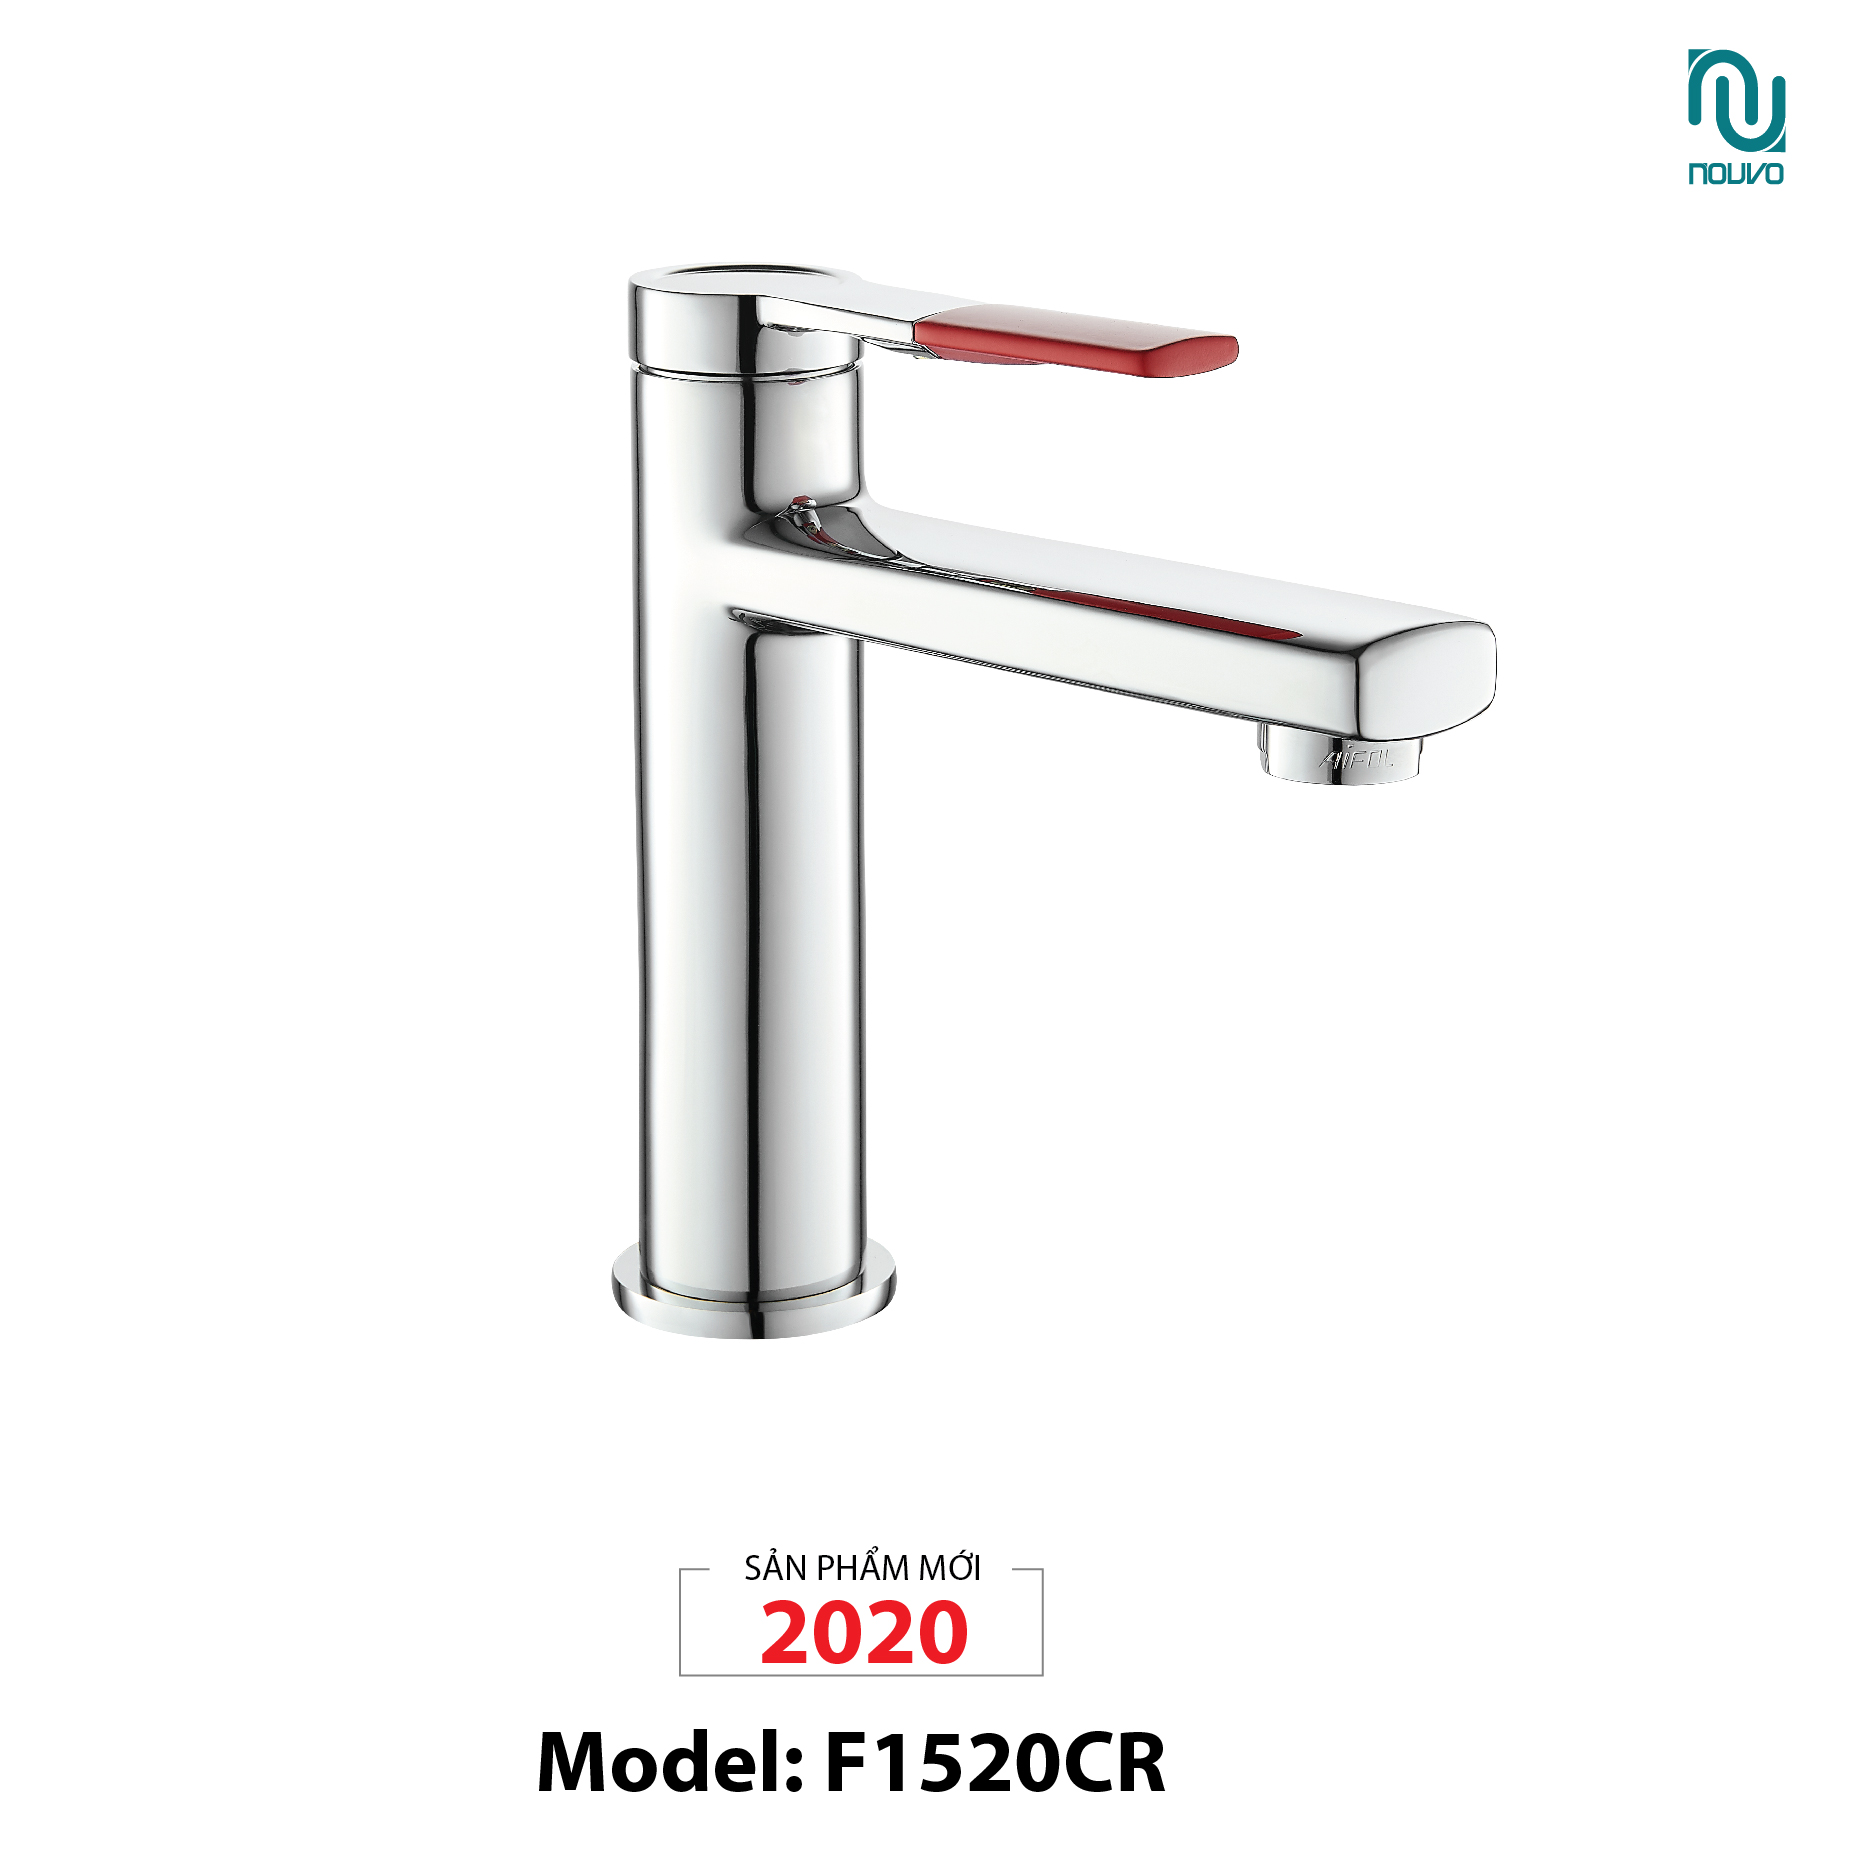 VÒI LAVABO NOUVO MODEL F1520CR (VÒI LAVABO MODEL F1520CR)